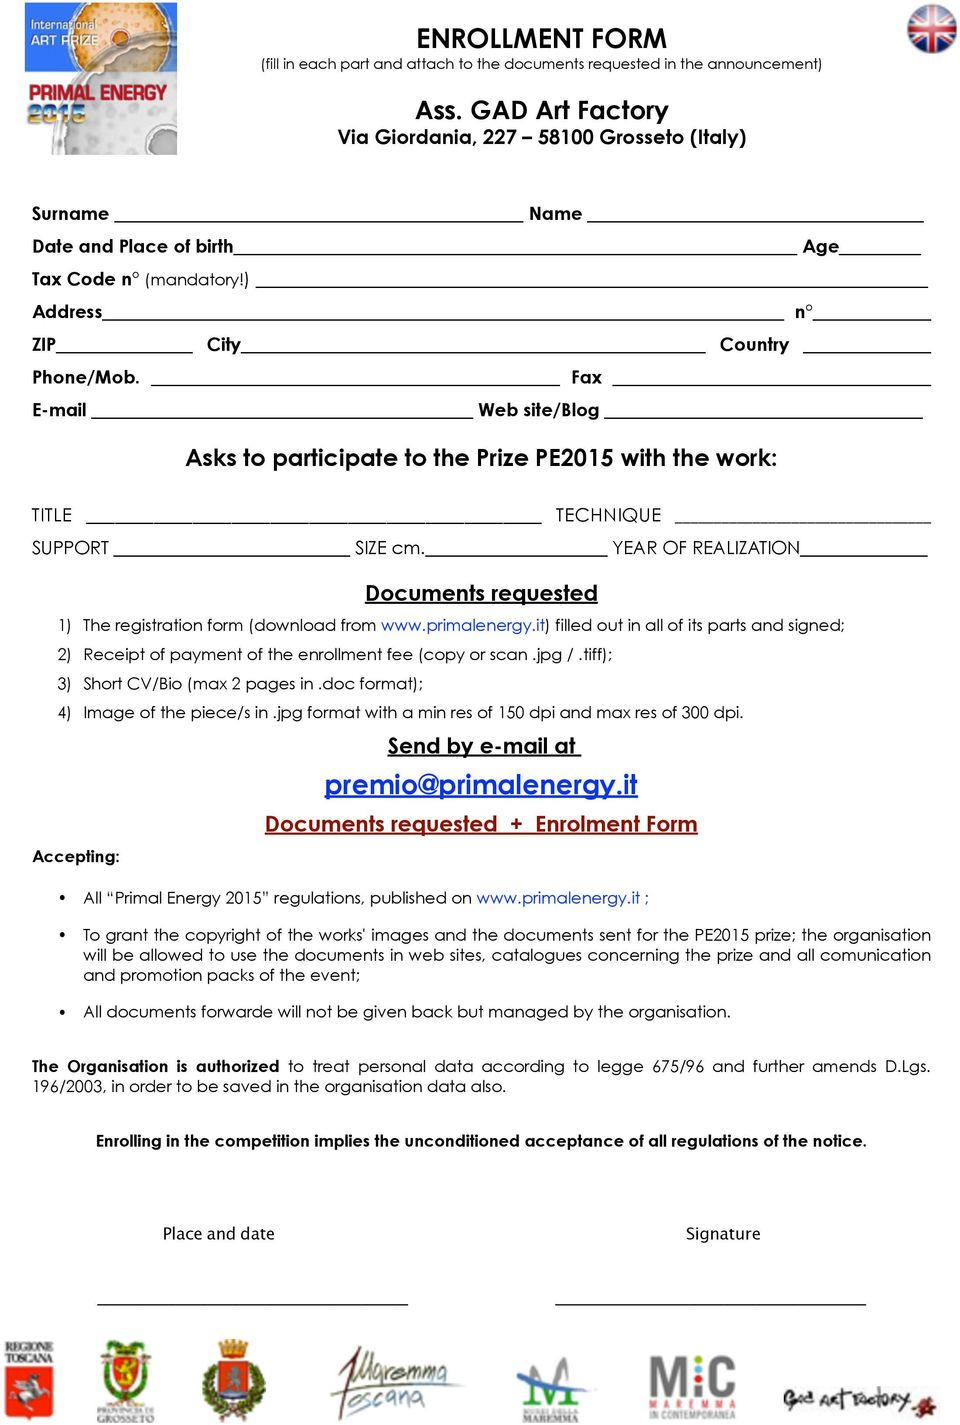 Fax E-mail Web site/blog Asks to participate to the Prize PE2015 with the work: TITLE TECHNIQUE SUPPORT SIZE cm. YEAR OF REALIZATION Documents requested 1) The registration form (download from www.